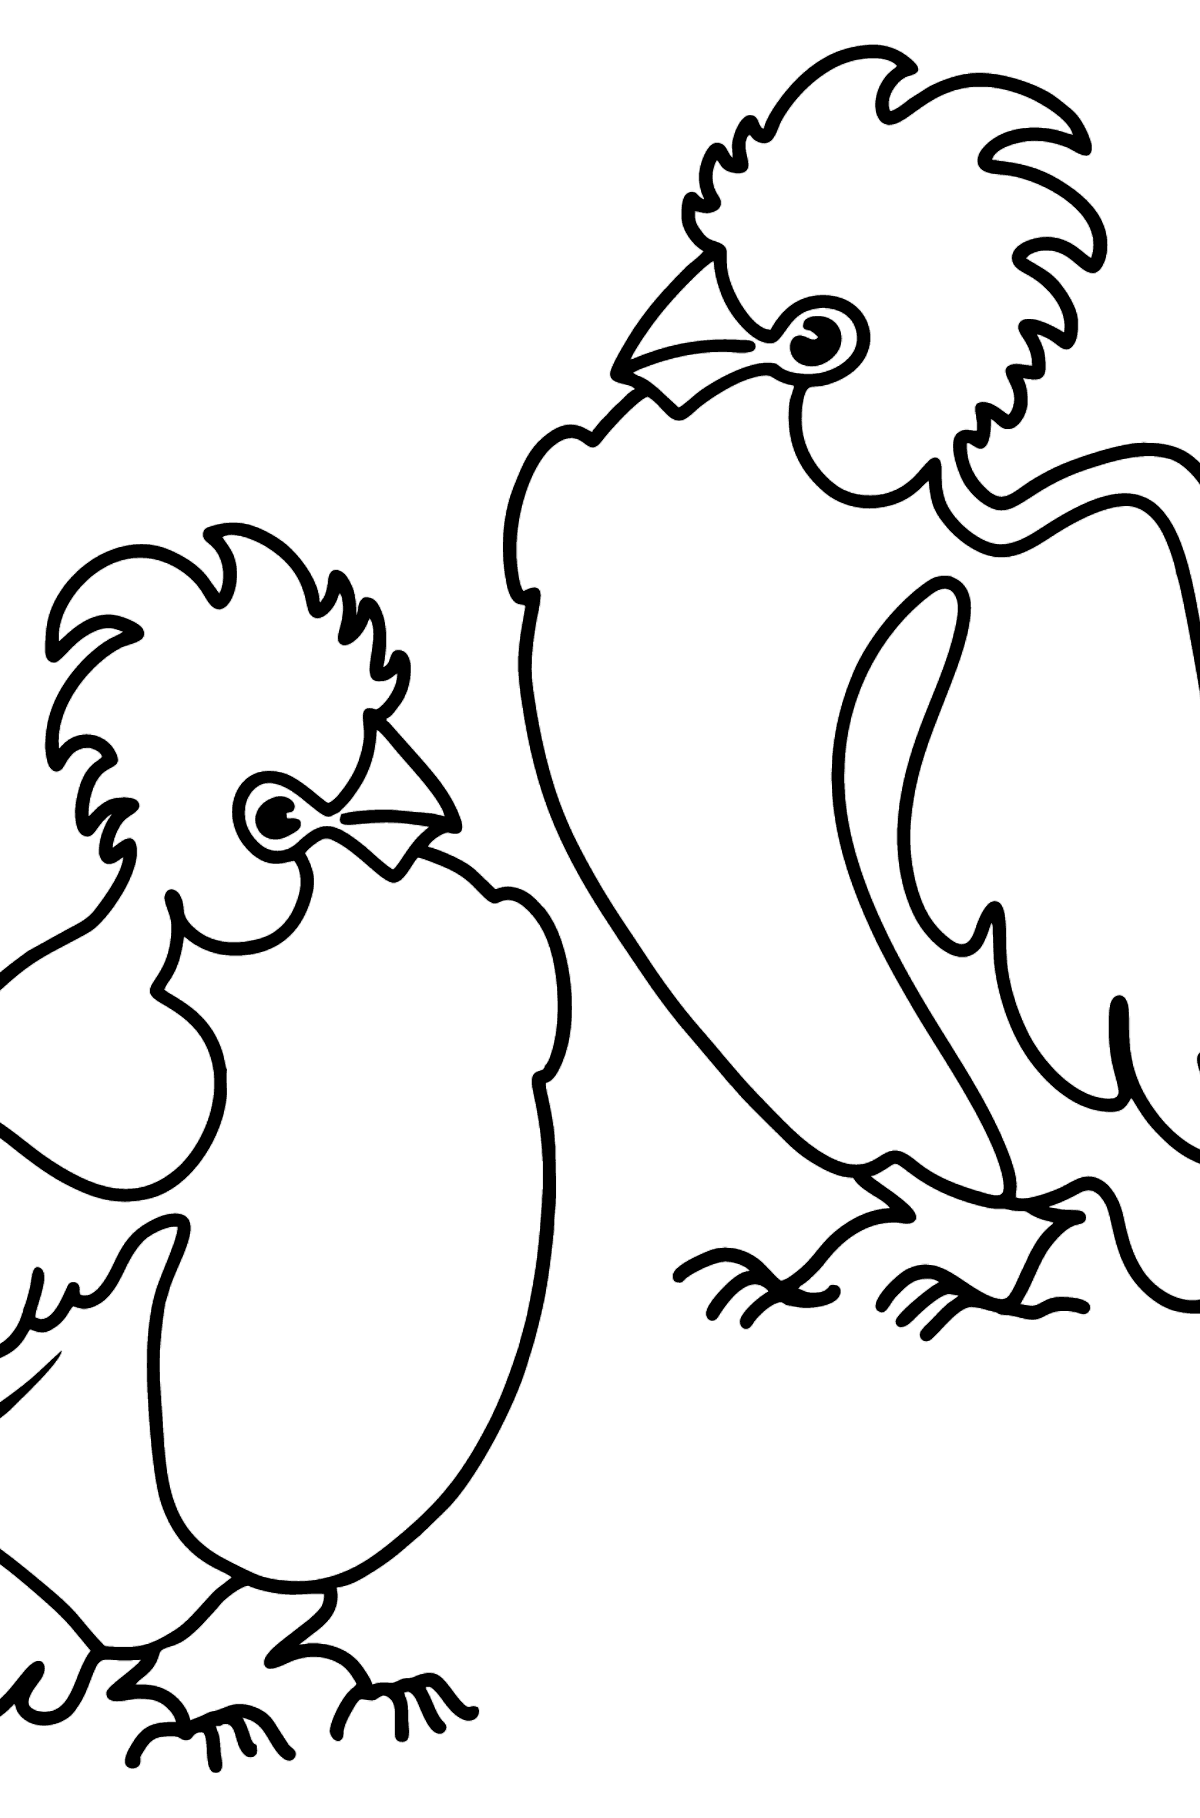 2 Parrots coloring page - Coloring Pages for Kids